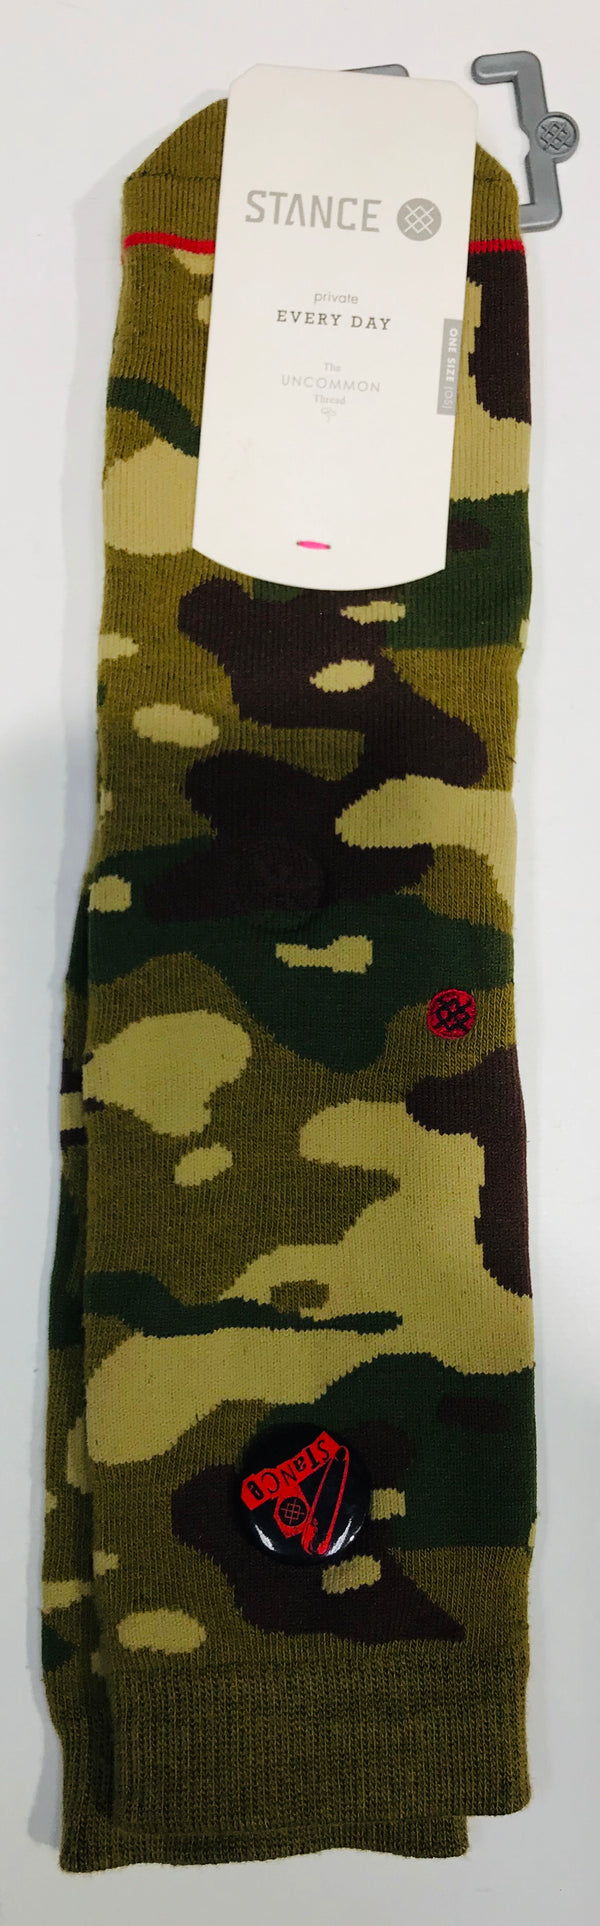 Stance Private Army Camo Crew Socks